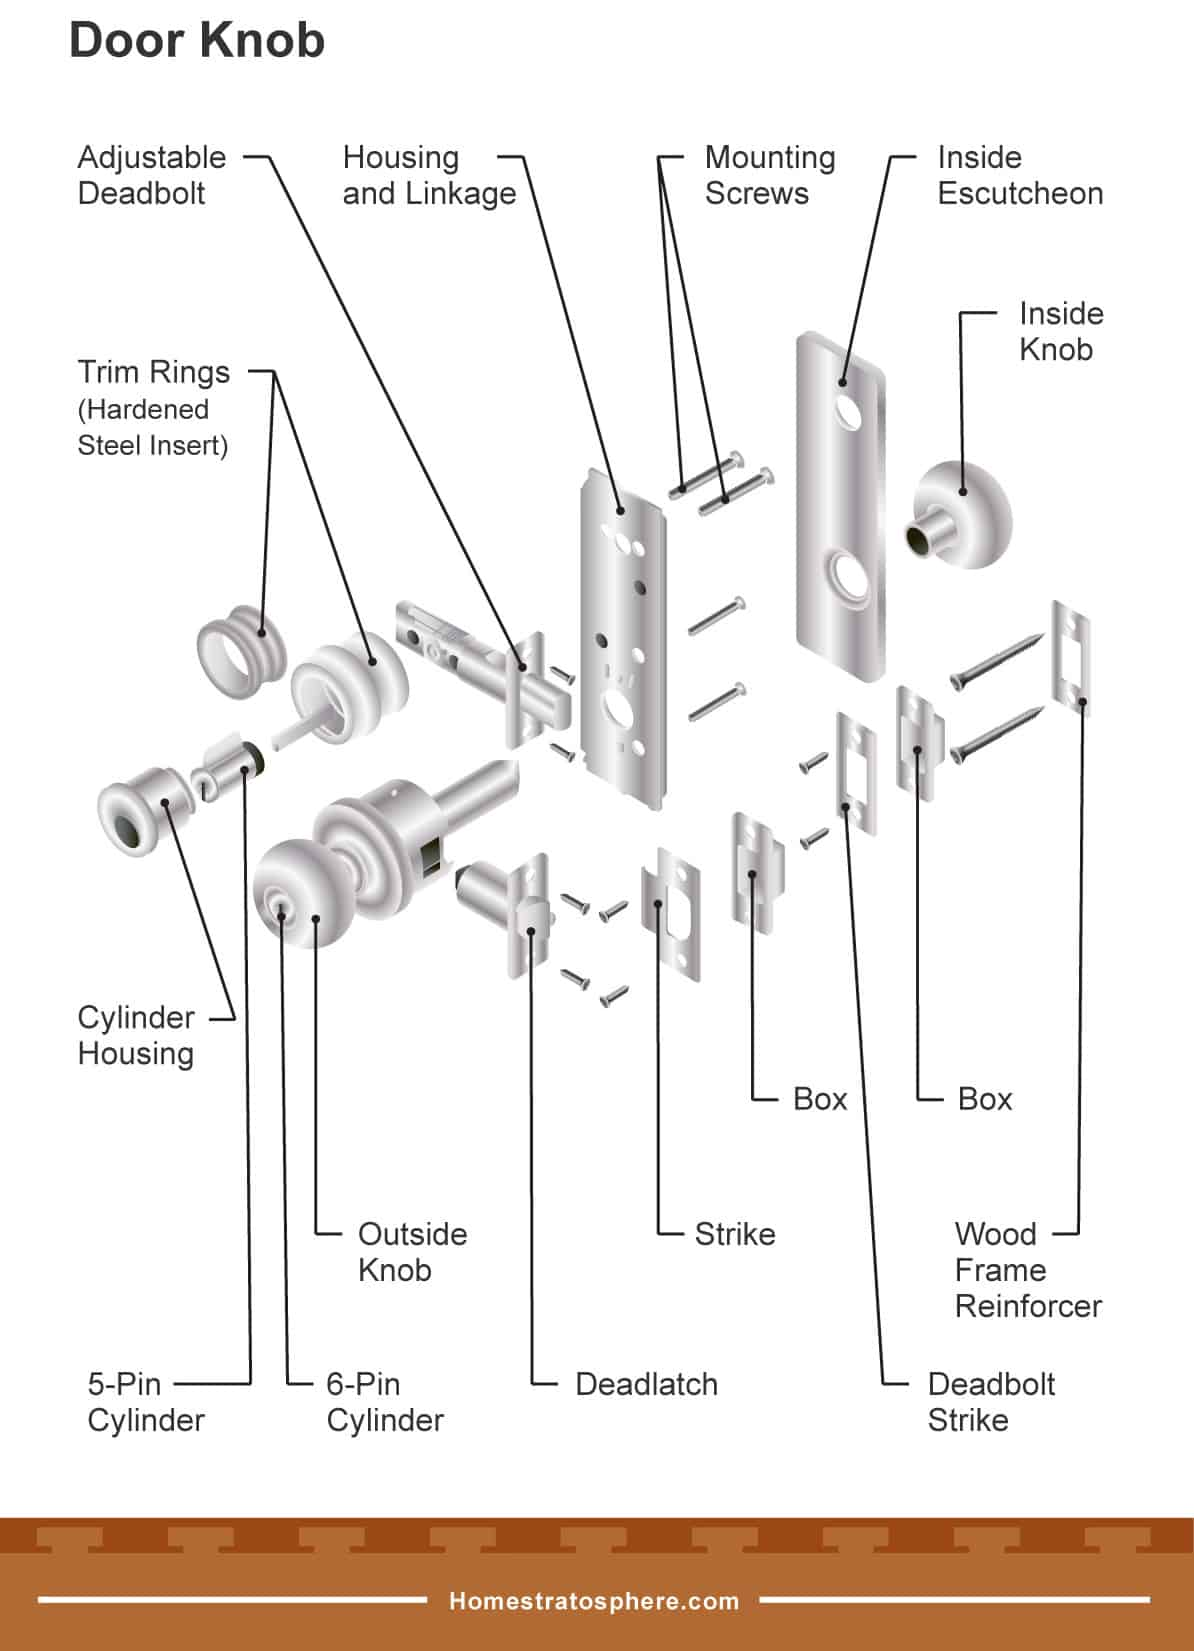 Parts of a Door (Incl. Frame, Knob and Hinge Diagrams) - Home StratosphereHome Stratosphere